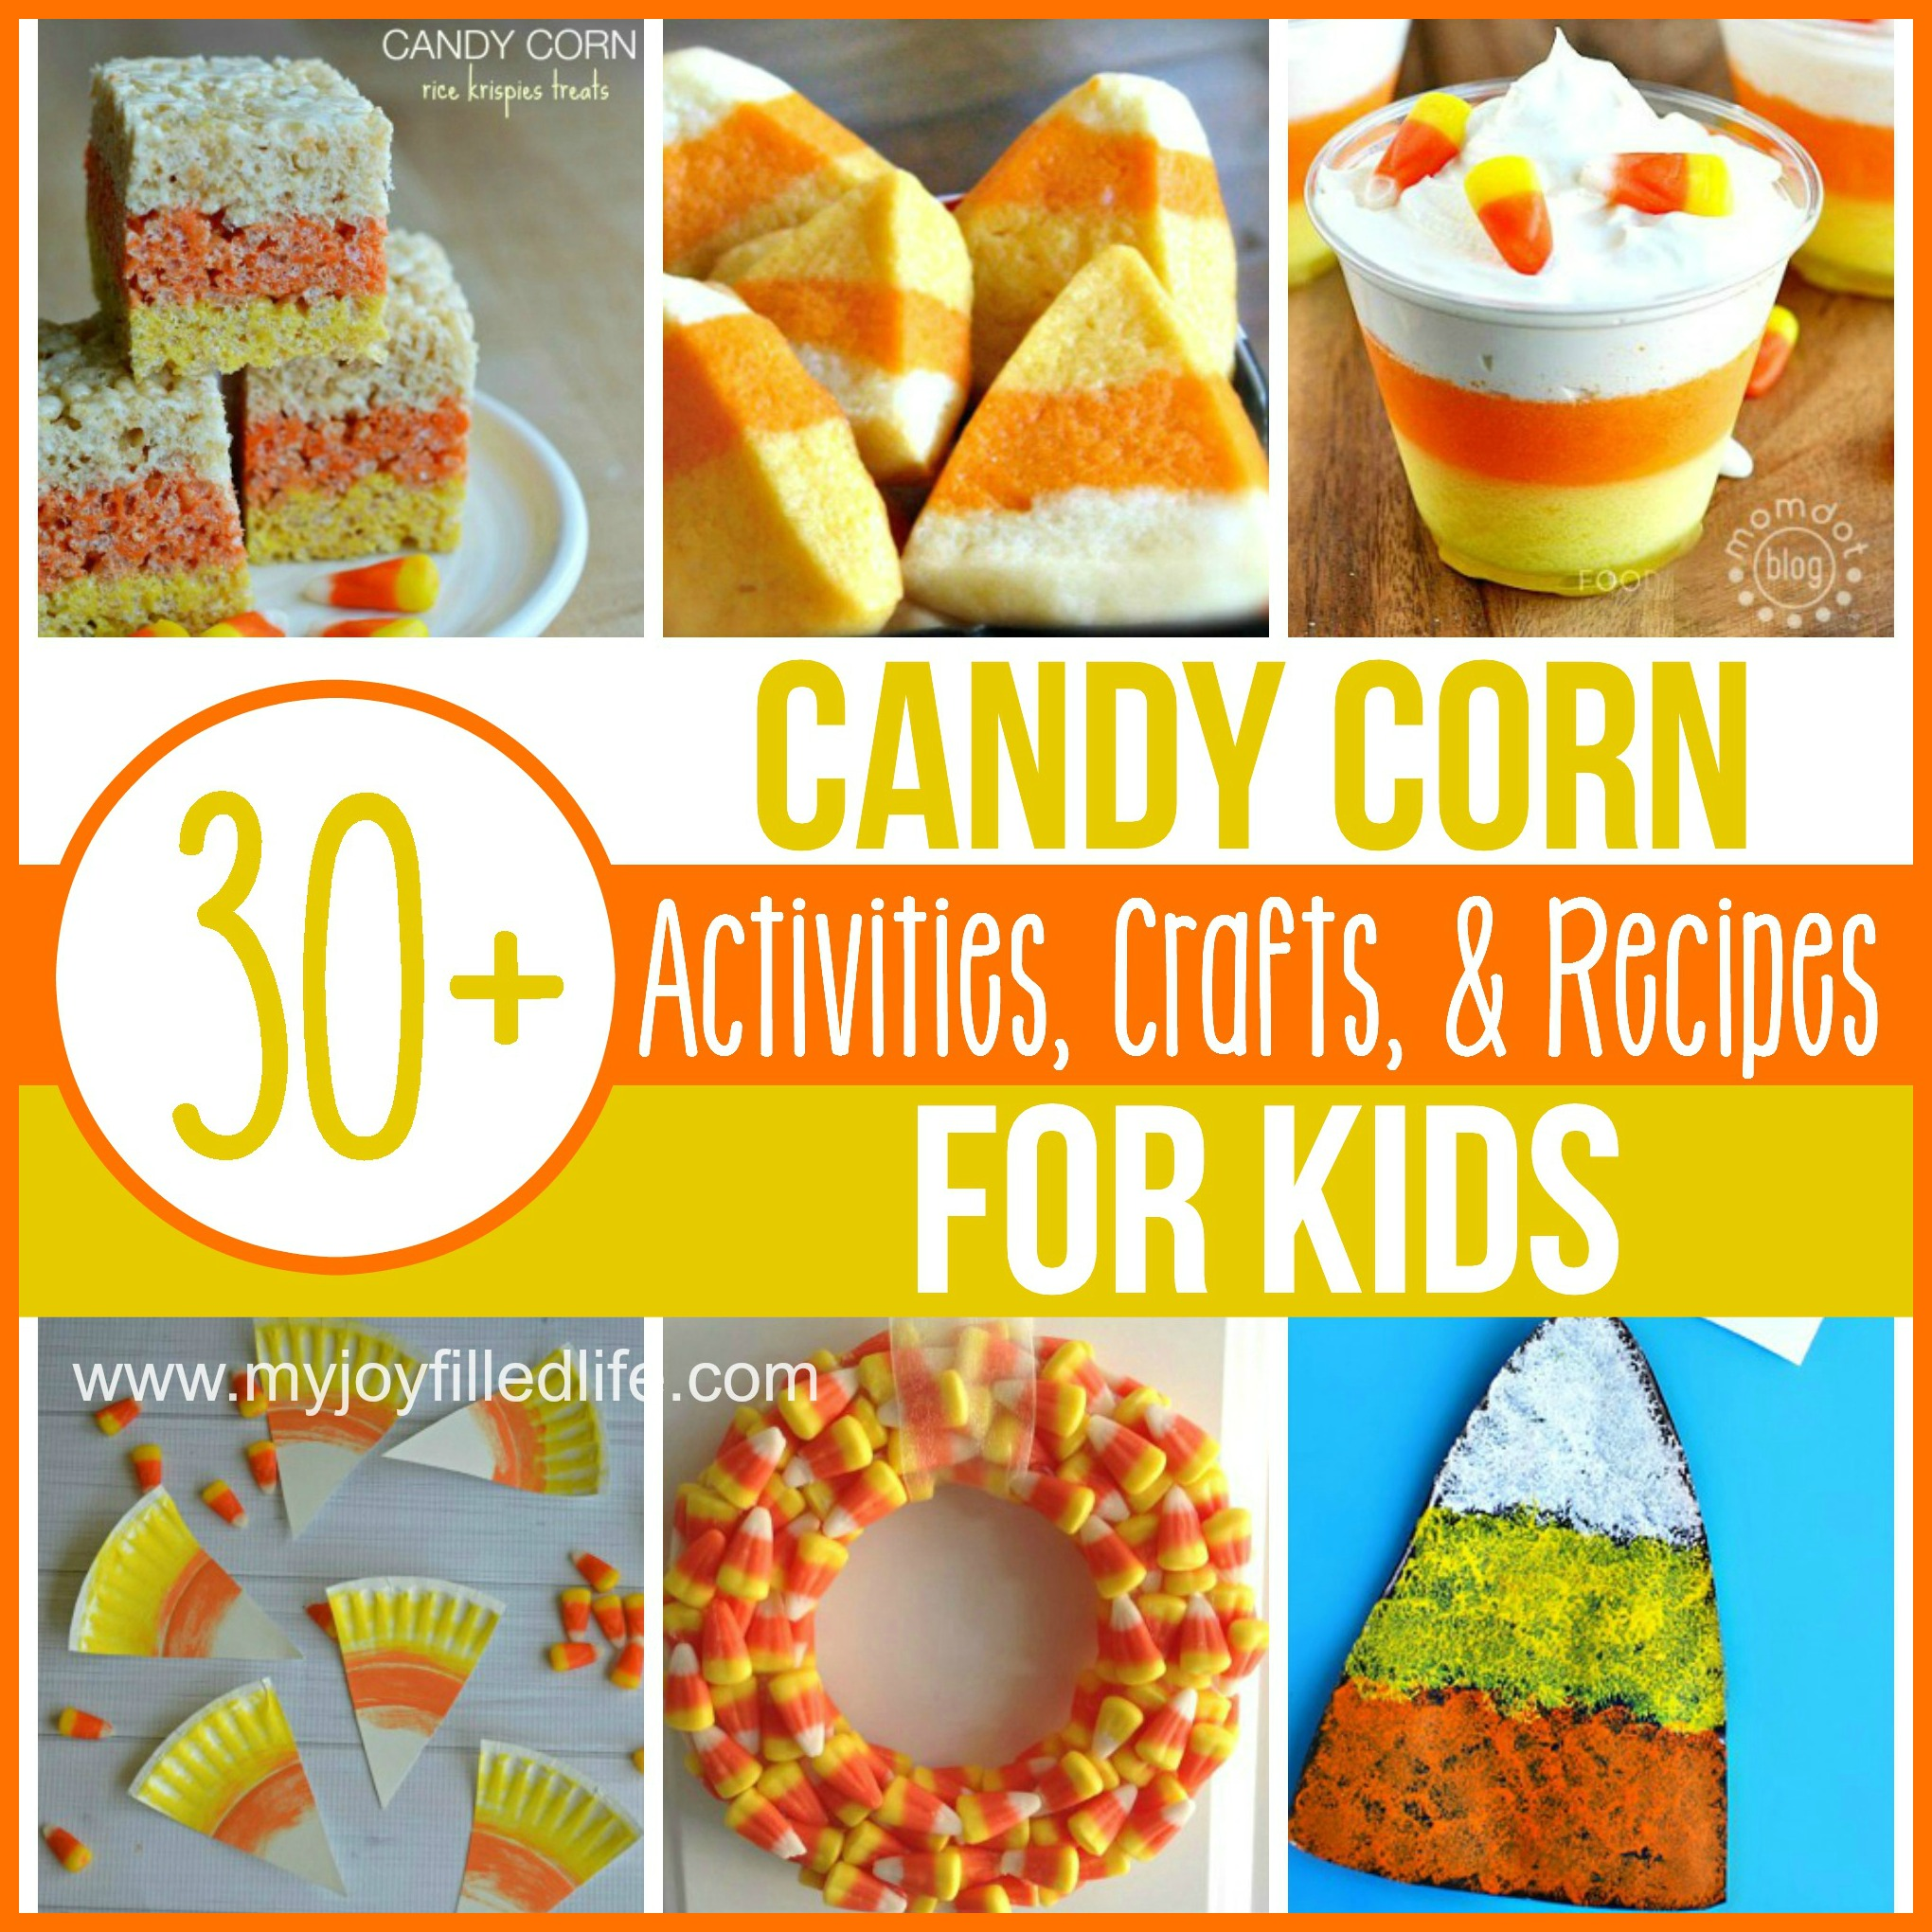 Candy Corn Activities, Crafts, and Recipes for Kids